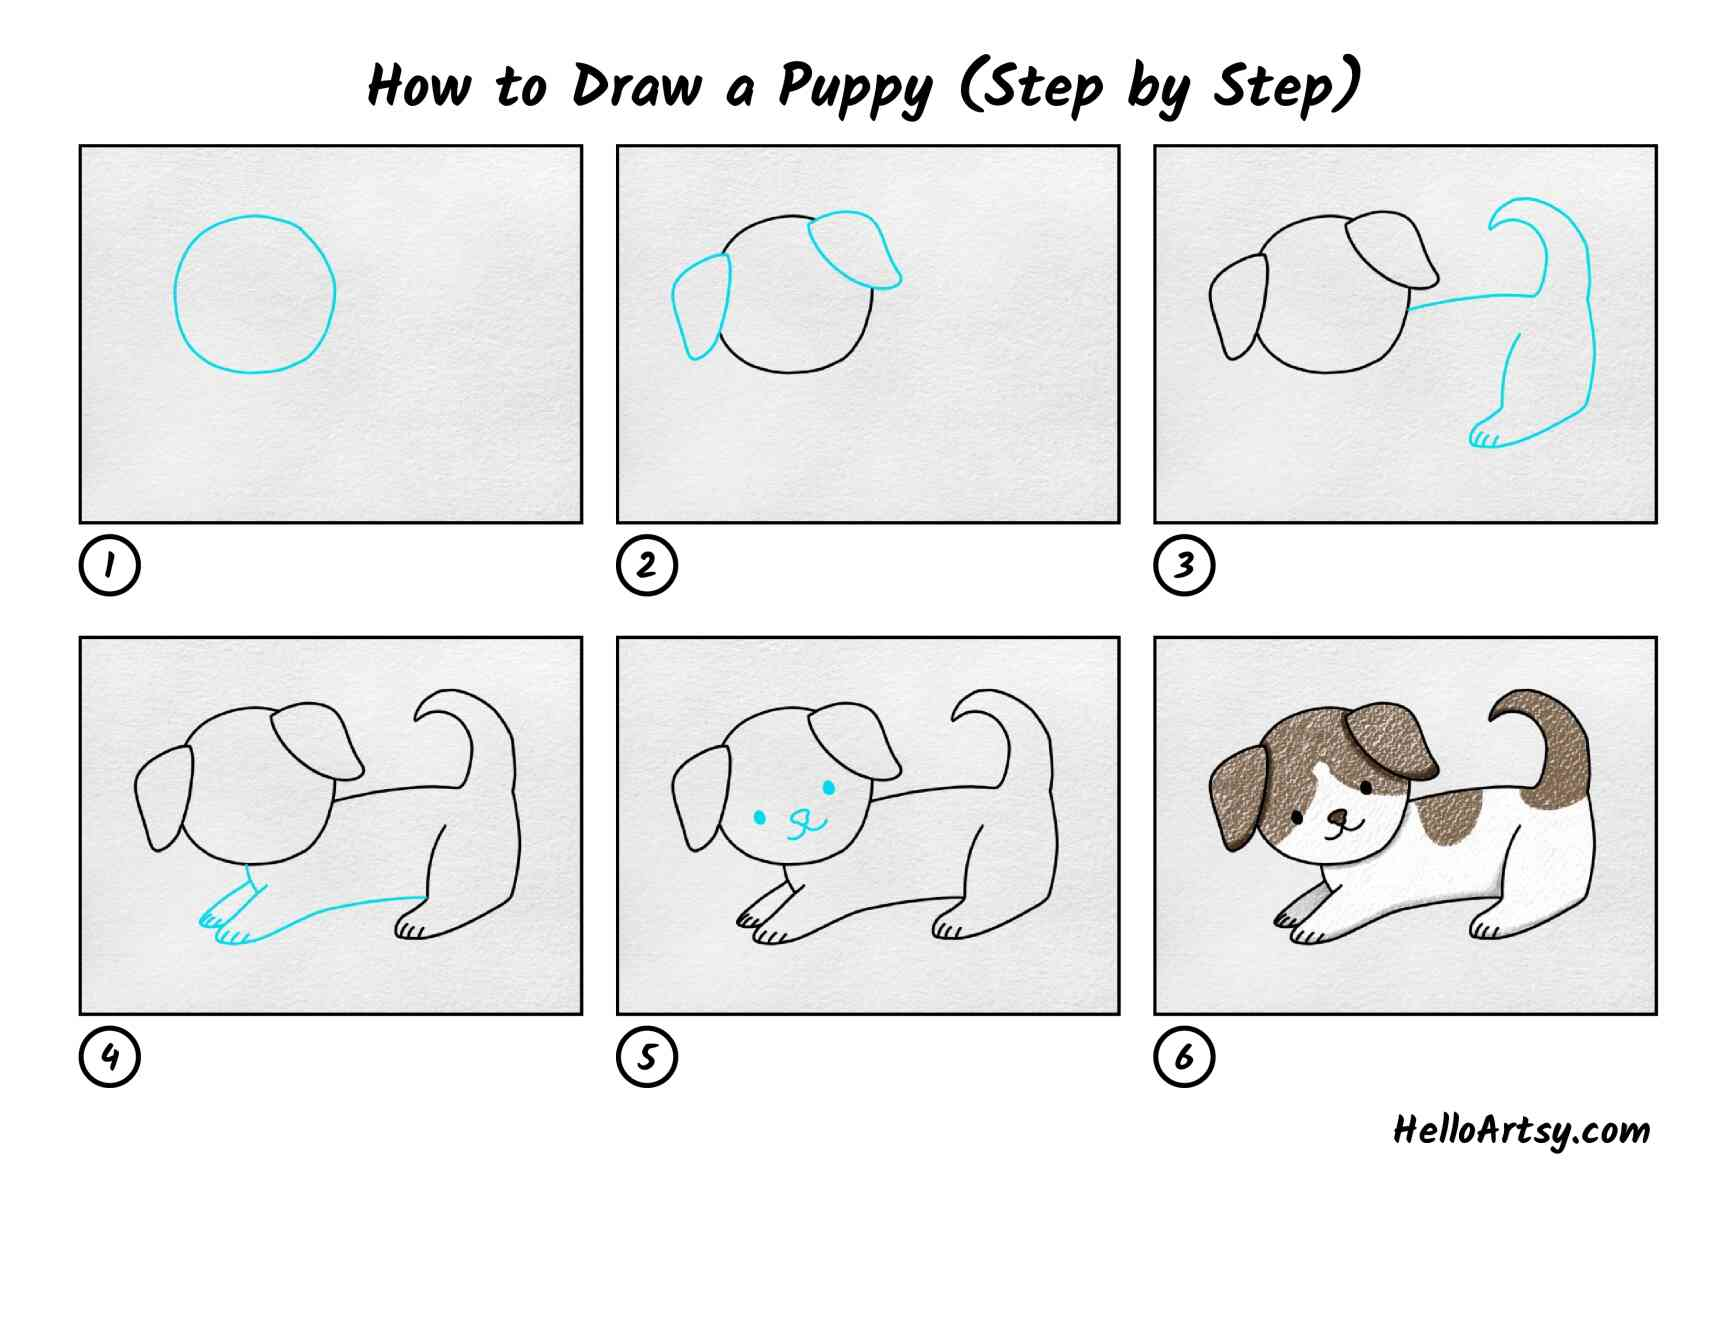 How To Draw A Puppy Step By Step: All Steps